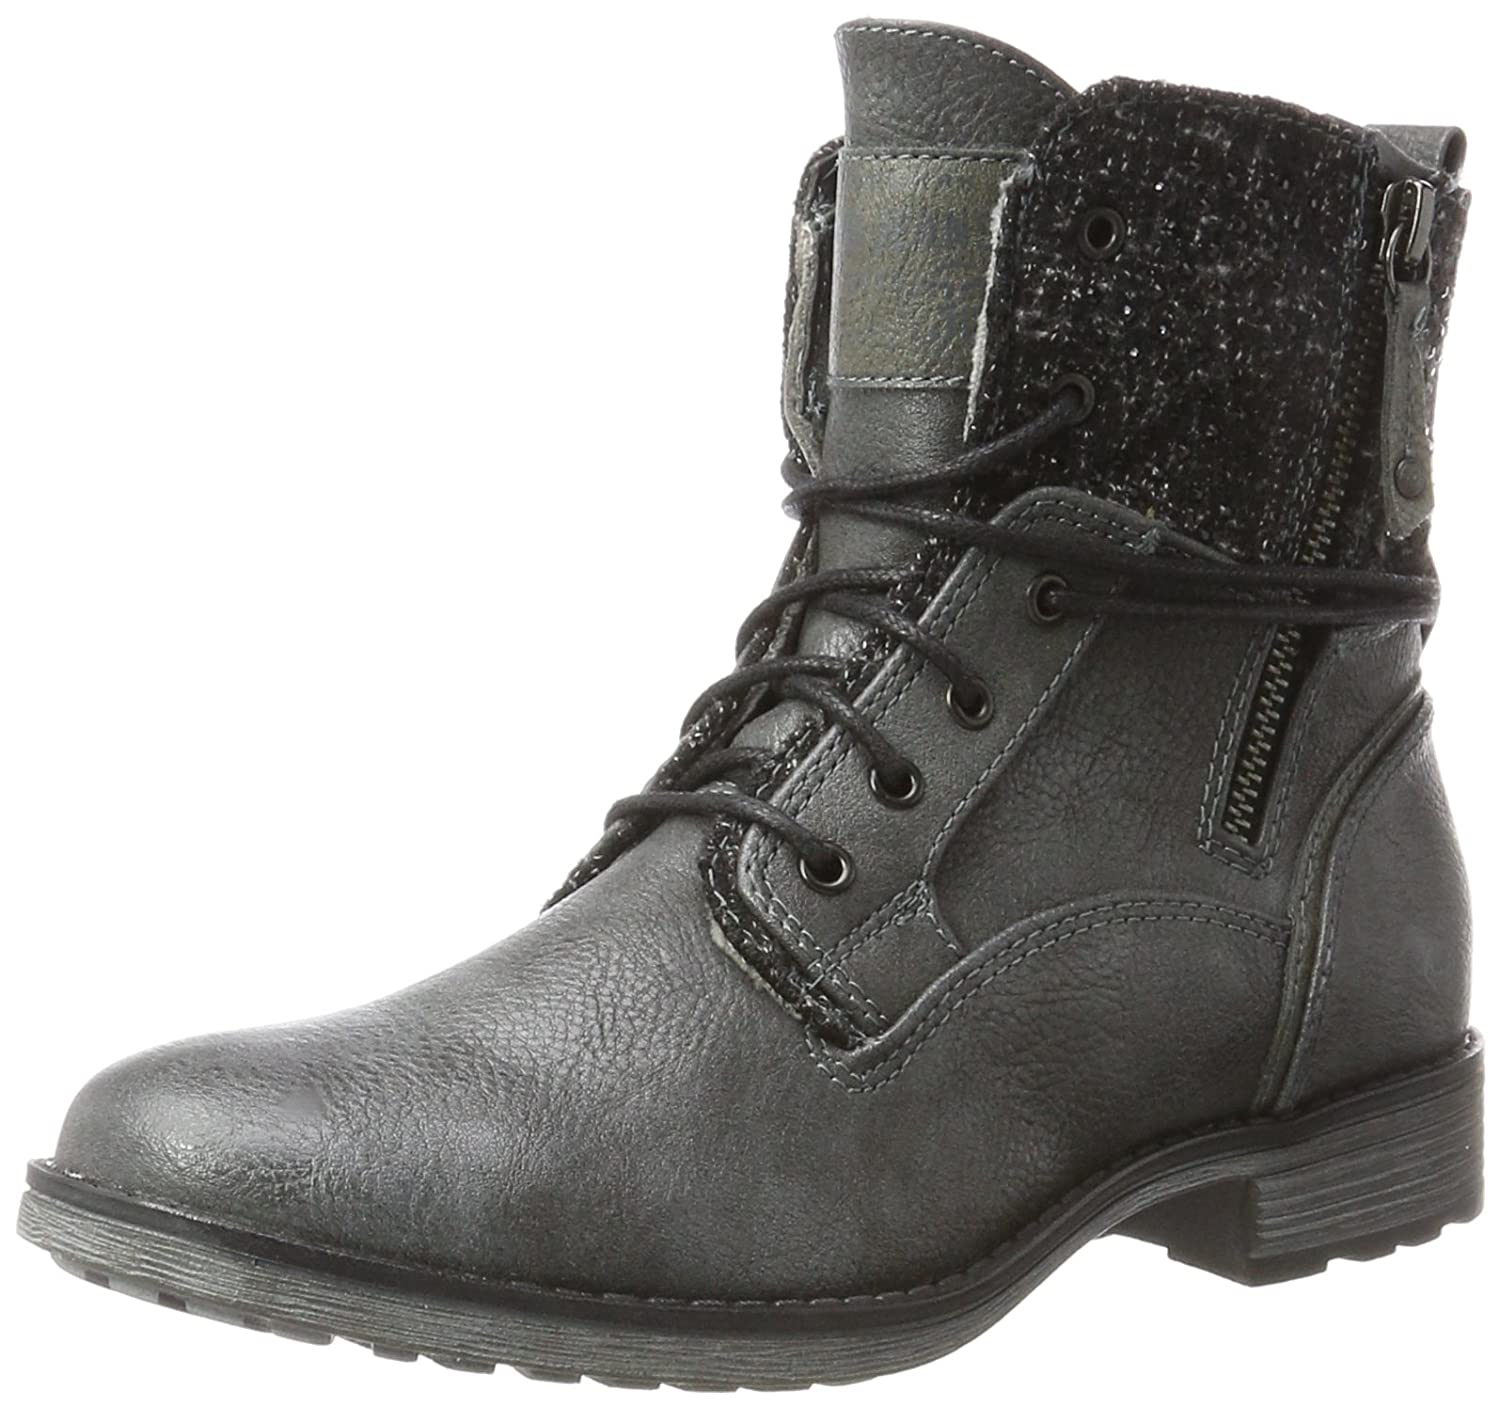 Mustang Femme, 1265-504-259, Bottes (Graphit) Femme, Gris 12161 Gris (Graphit) ef837e7 - conorscully.space